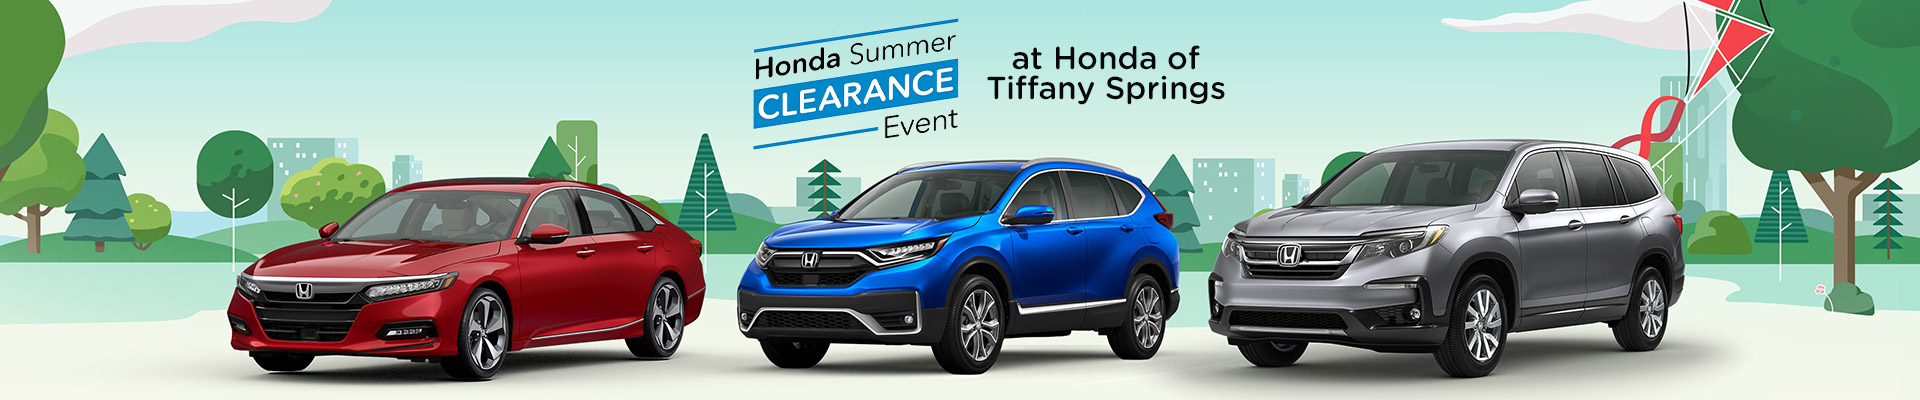 HondaTiffanySprings-HSCE-1920x400.jpg